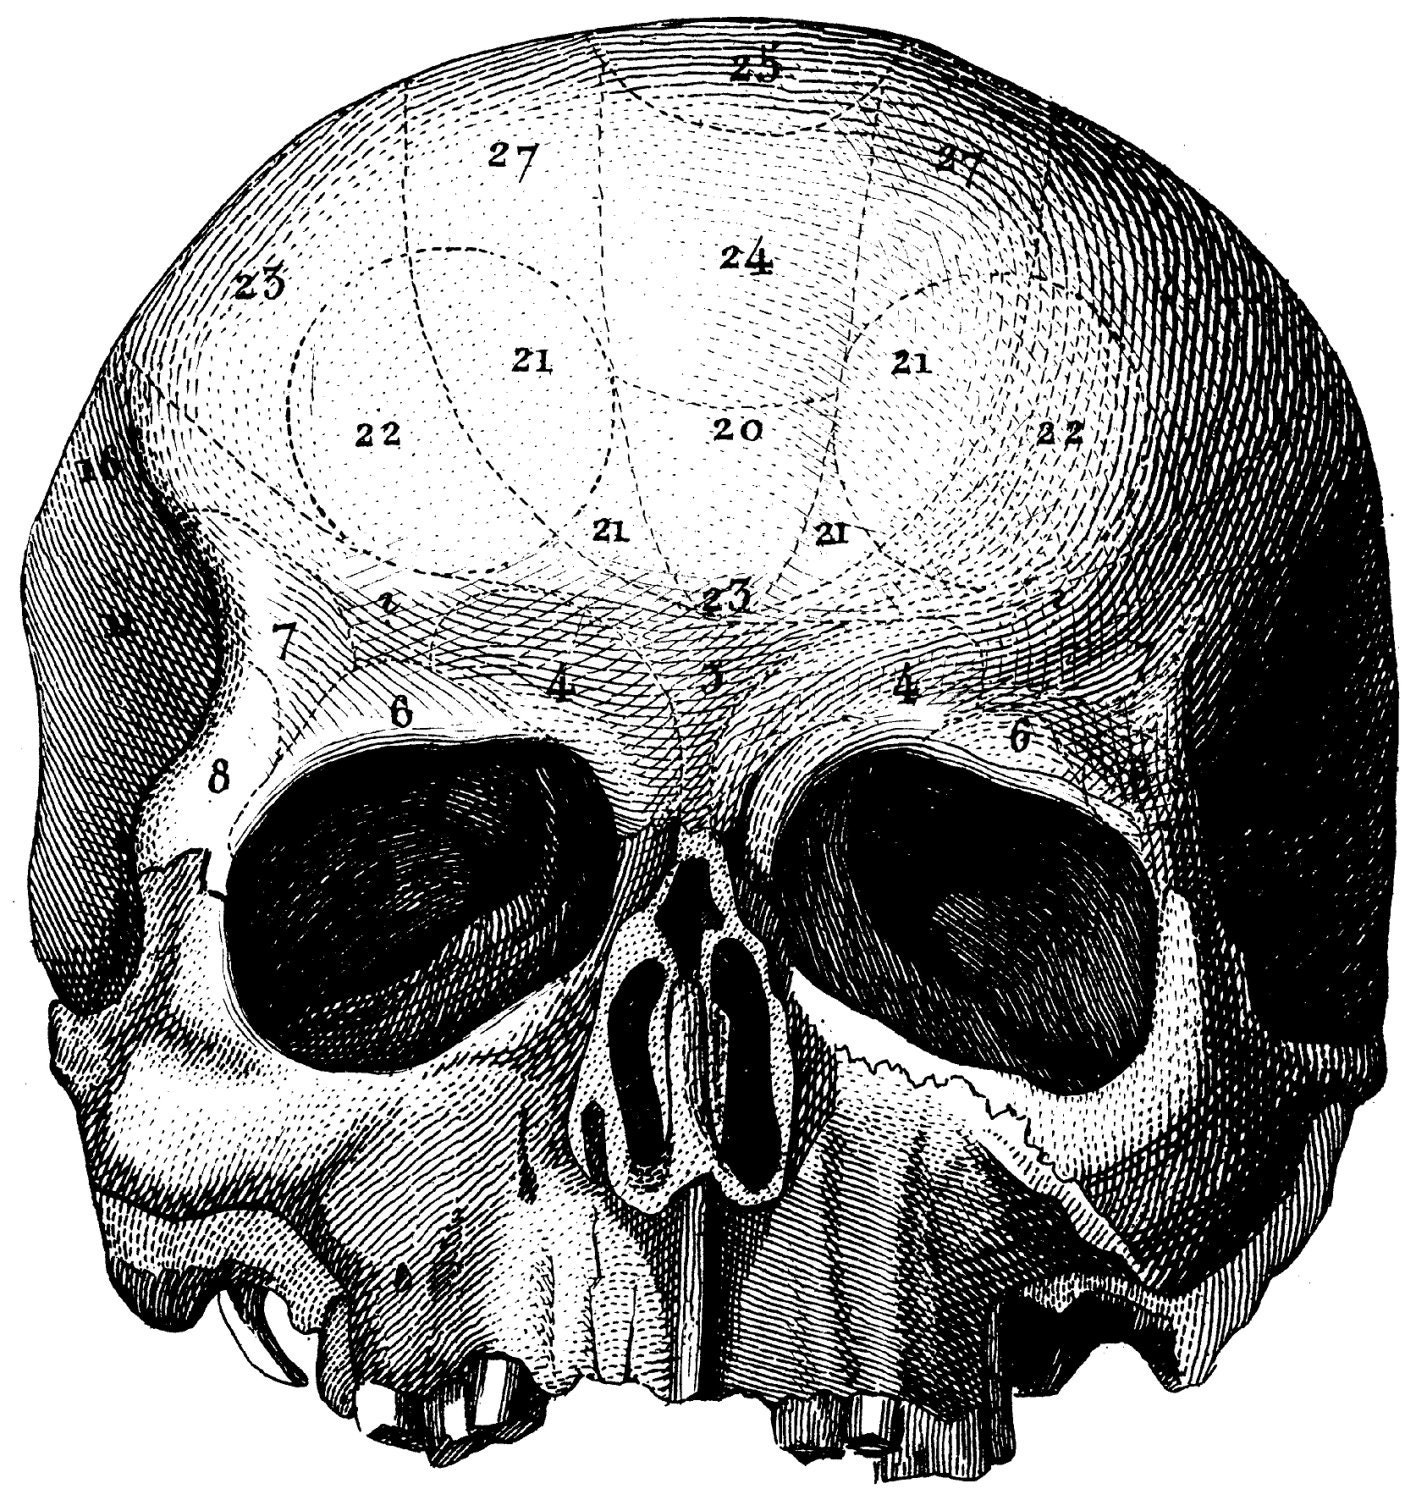 Items similar to The human skull, Old medical atlas ...